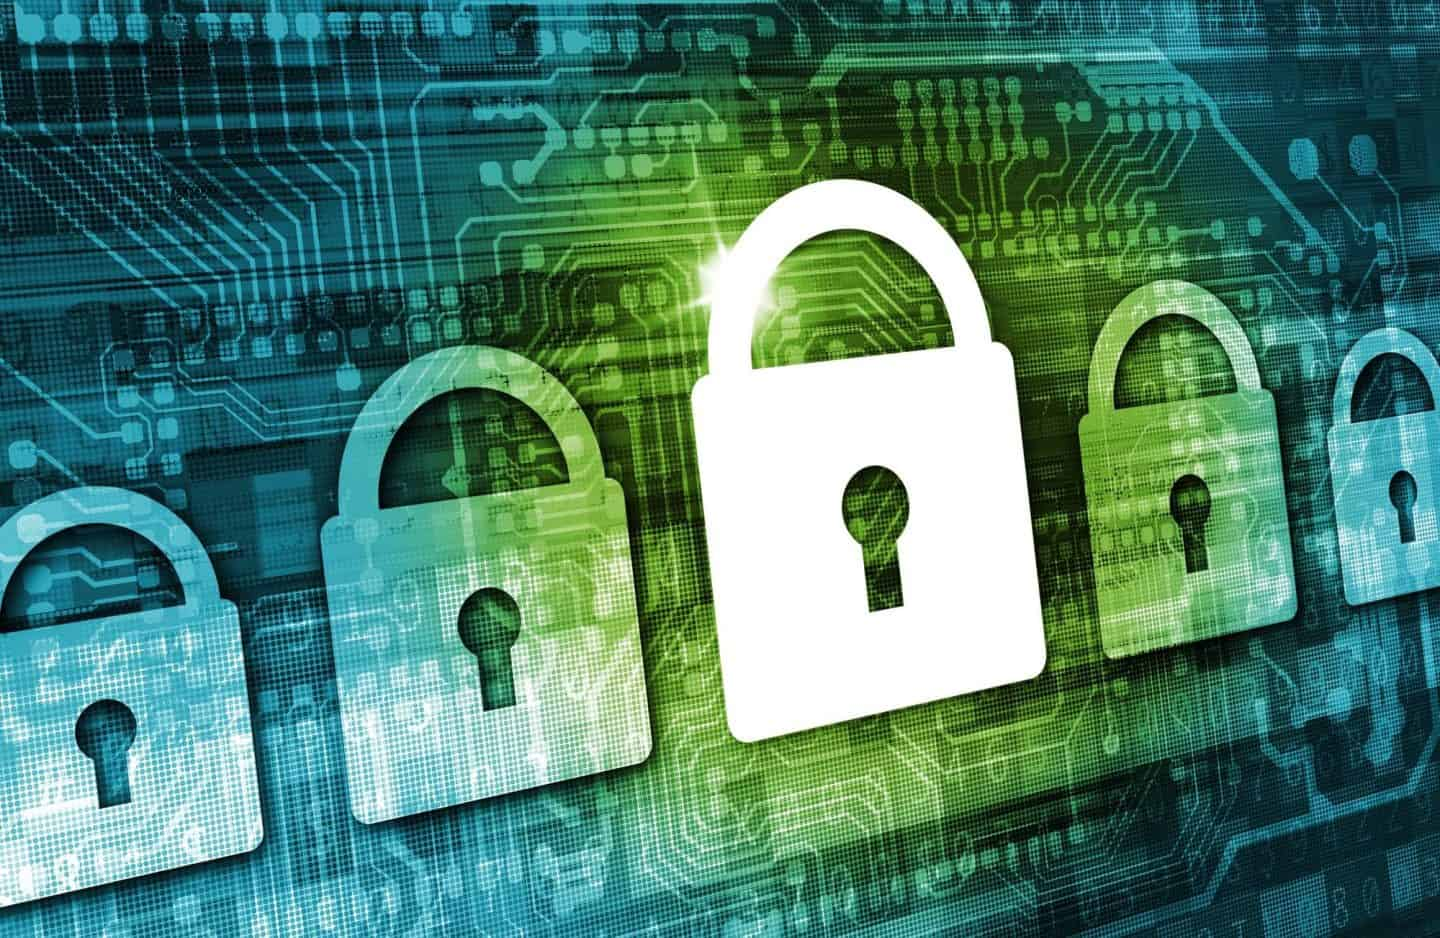 What Bloggers Need To Know On Cyber Security